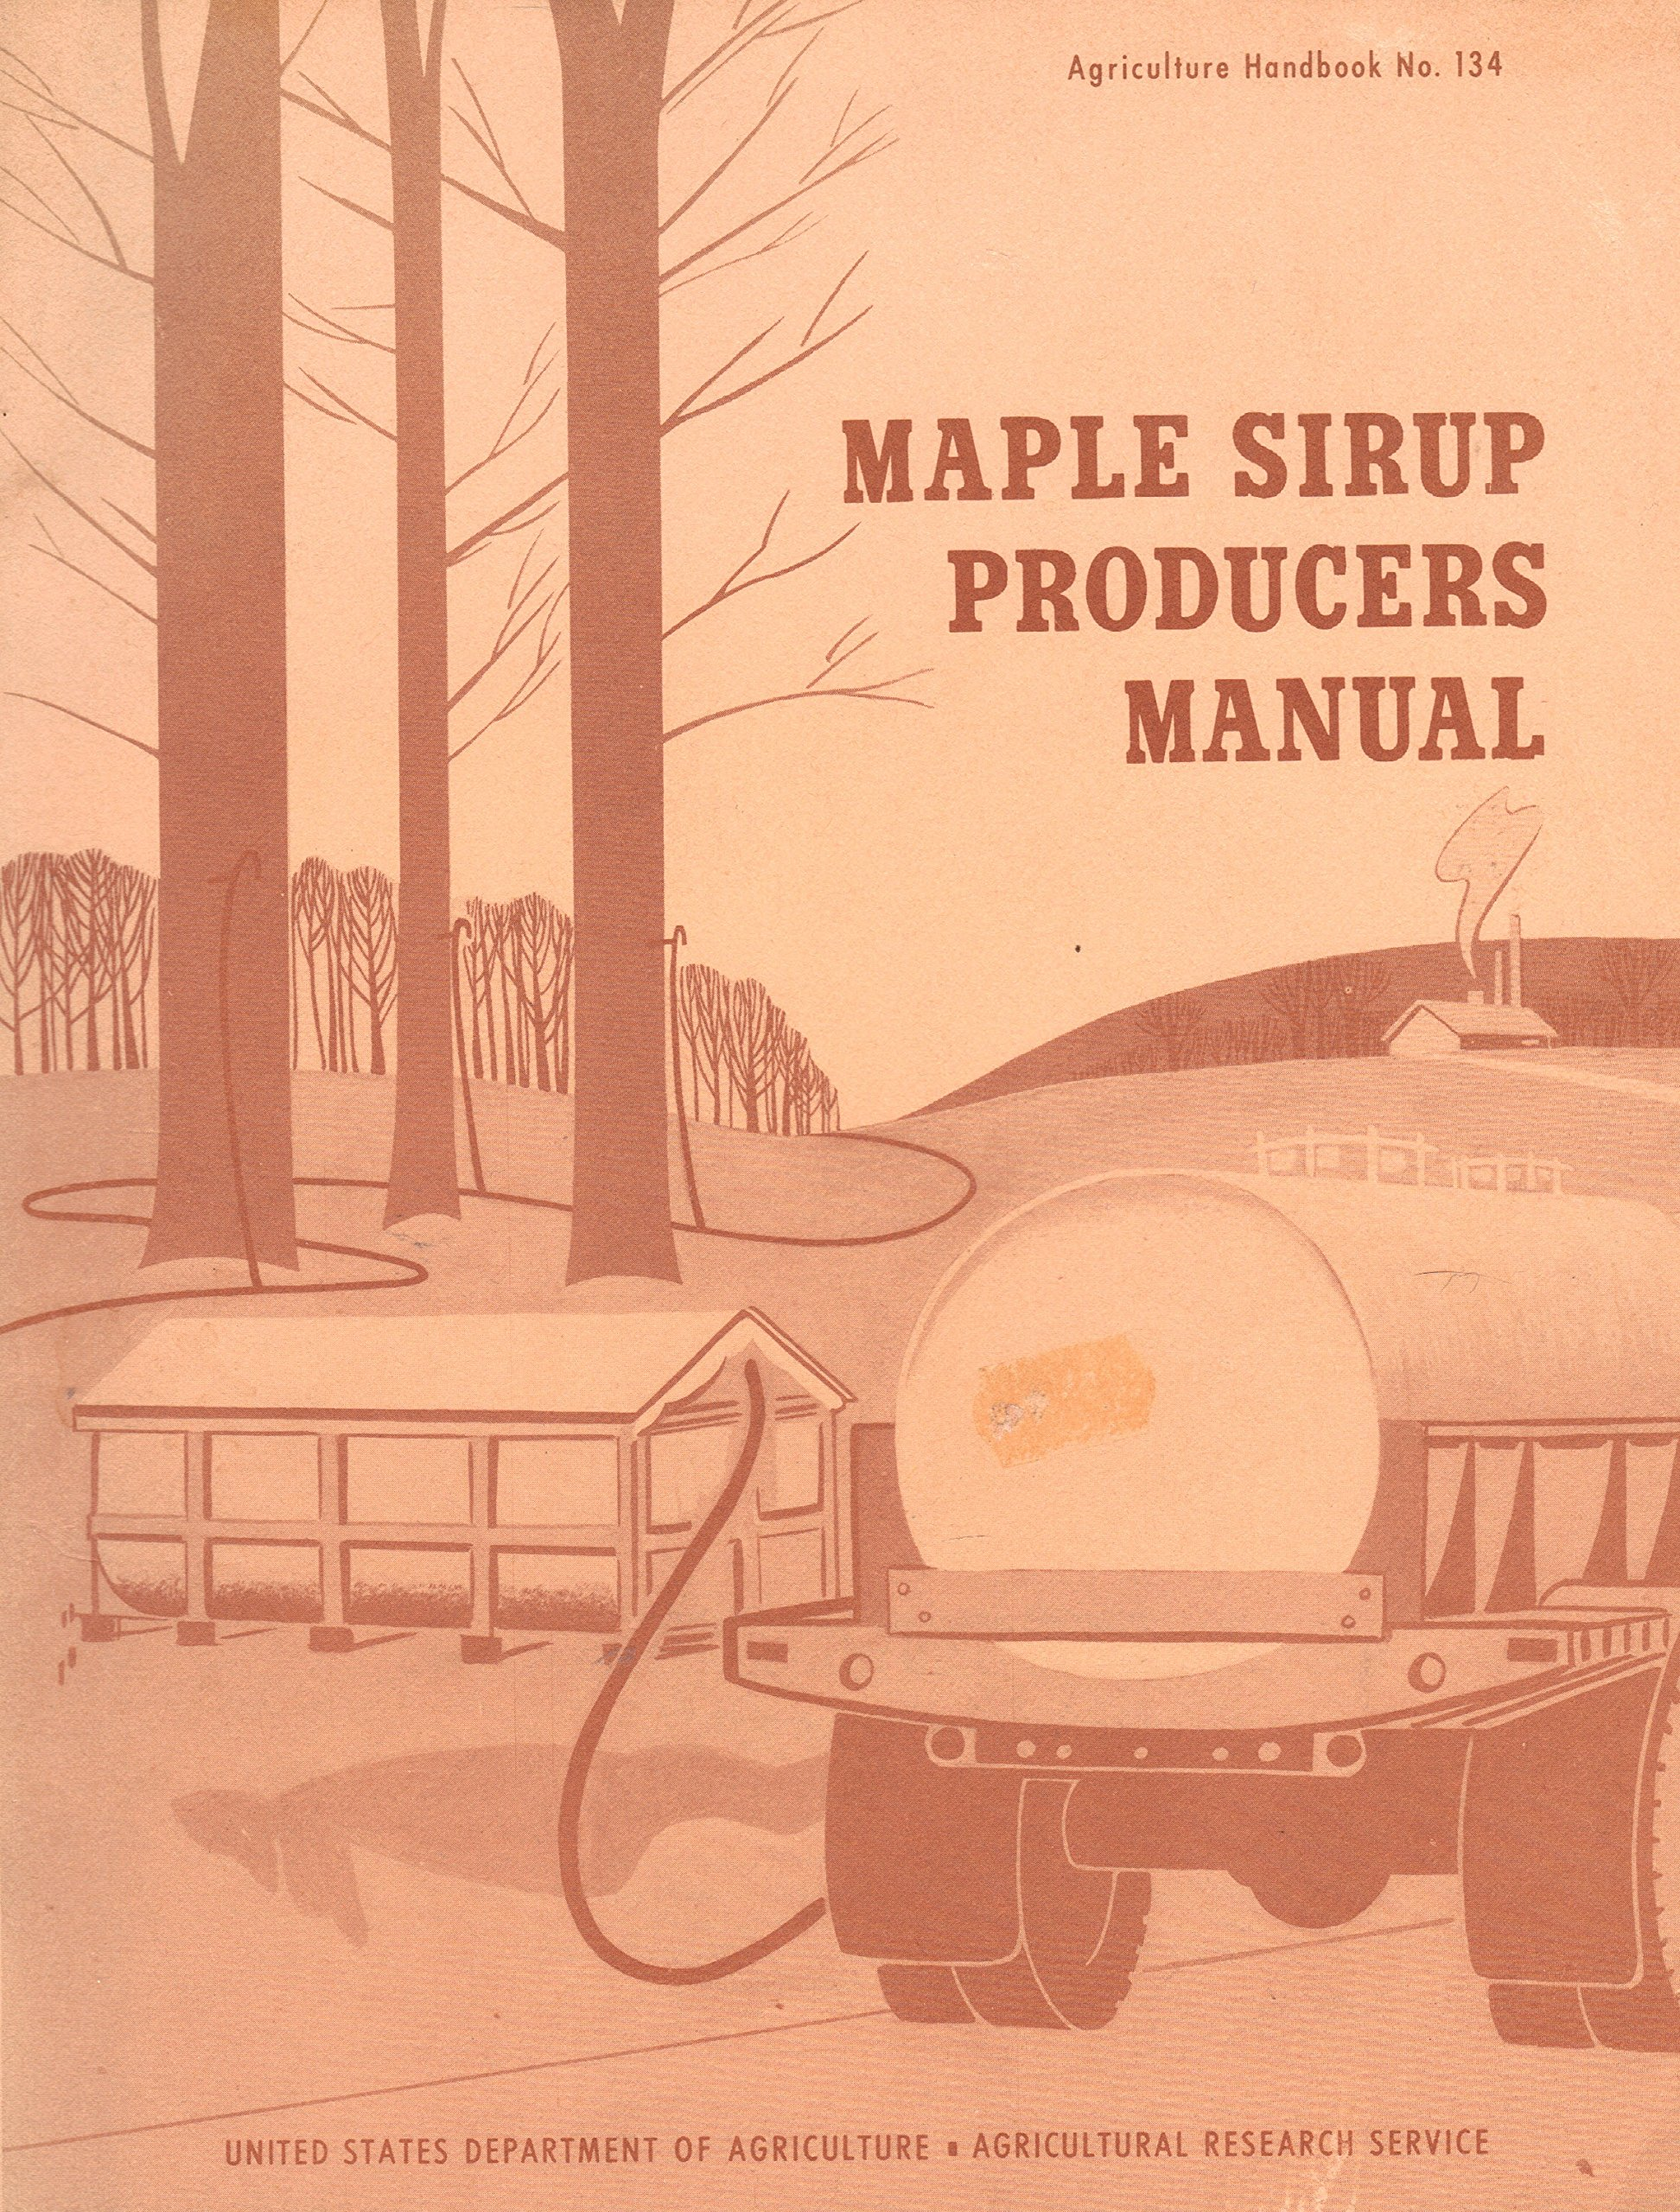 Maple Sirup Producers Manual (Agriculture Handbook No. 134), C. O. Willits; Claude H. Hills